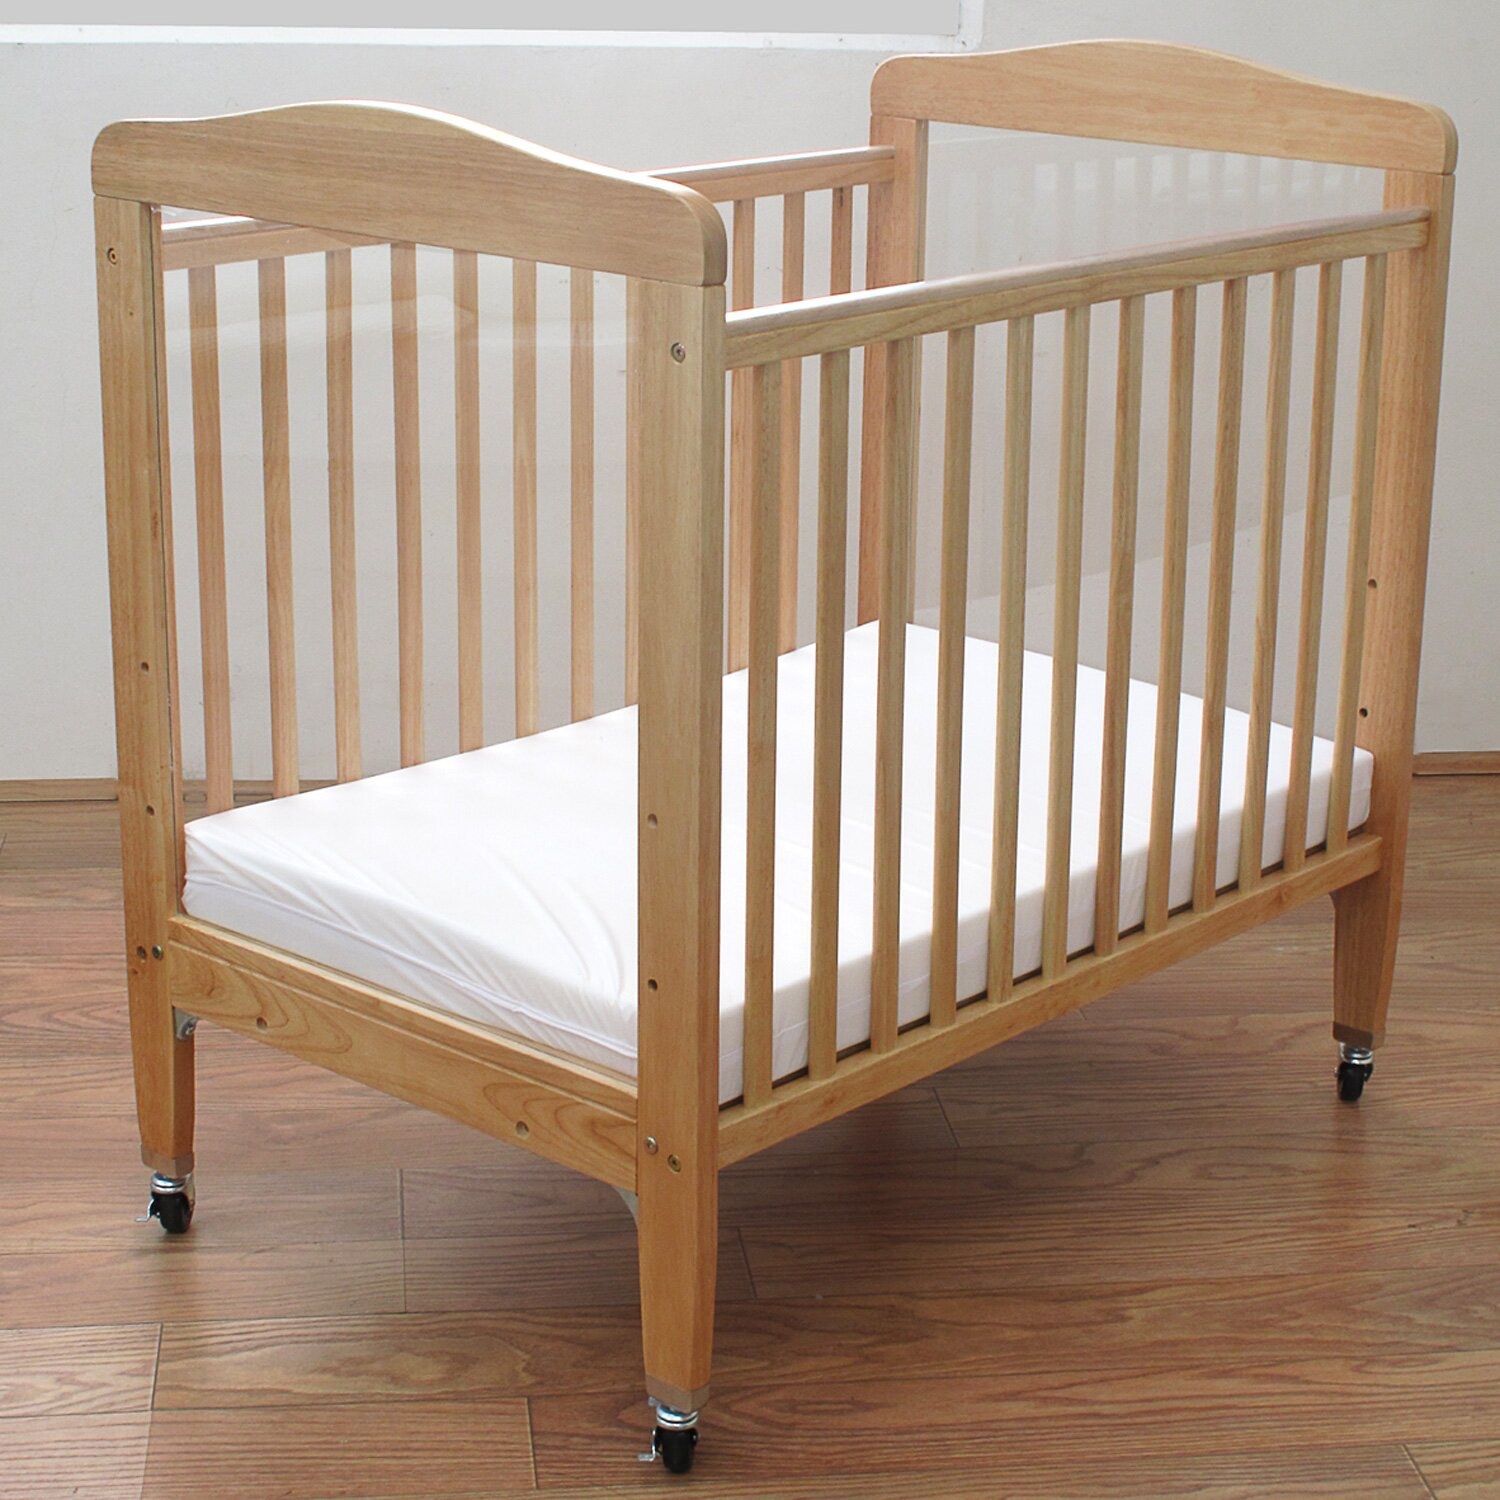 Baby cribs for daycare centers - L A Baby Compact Wooden Window Convertible Crib With Mattress